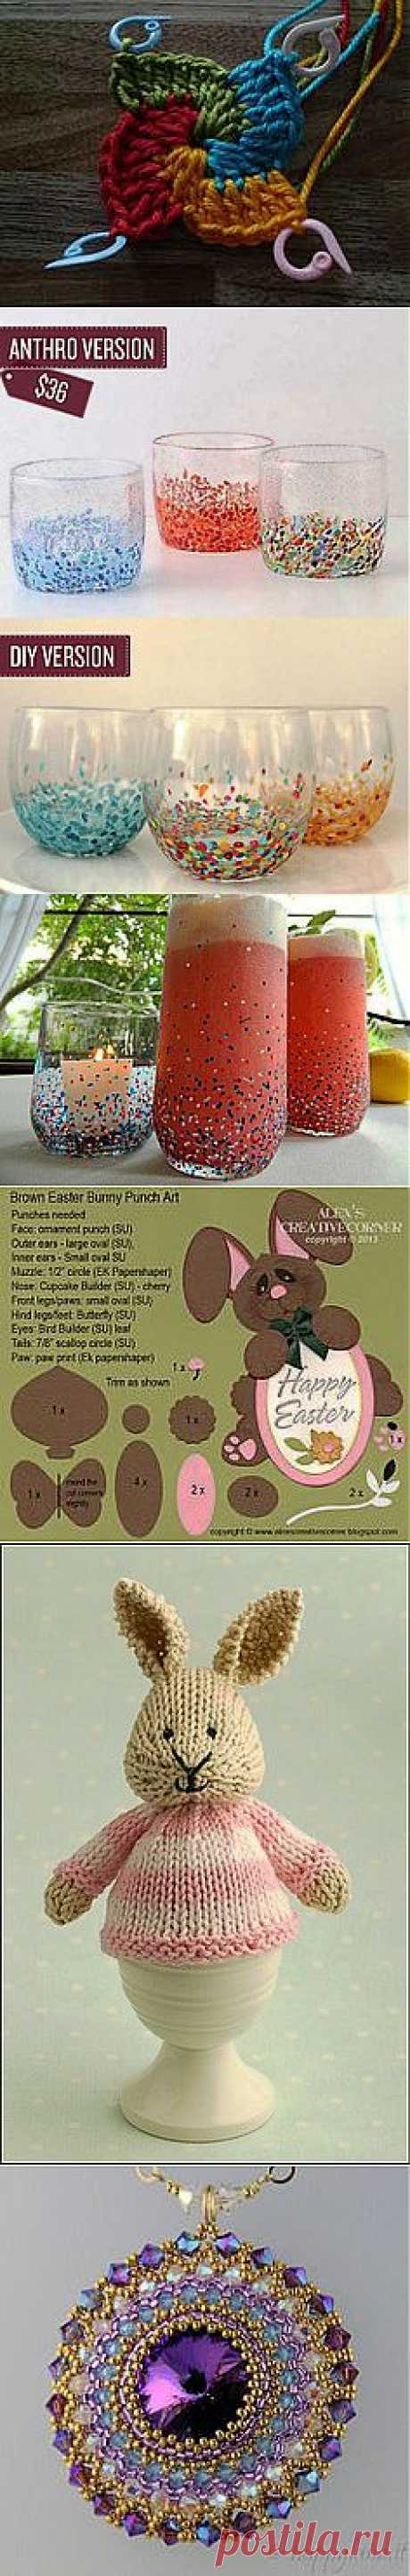 DIY & Crafts on Pinterest - from crochet patterns to costume ideas